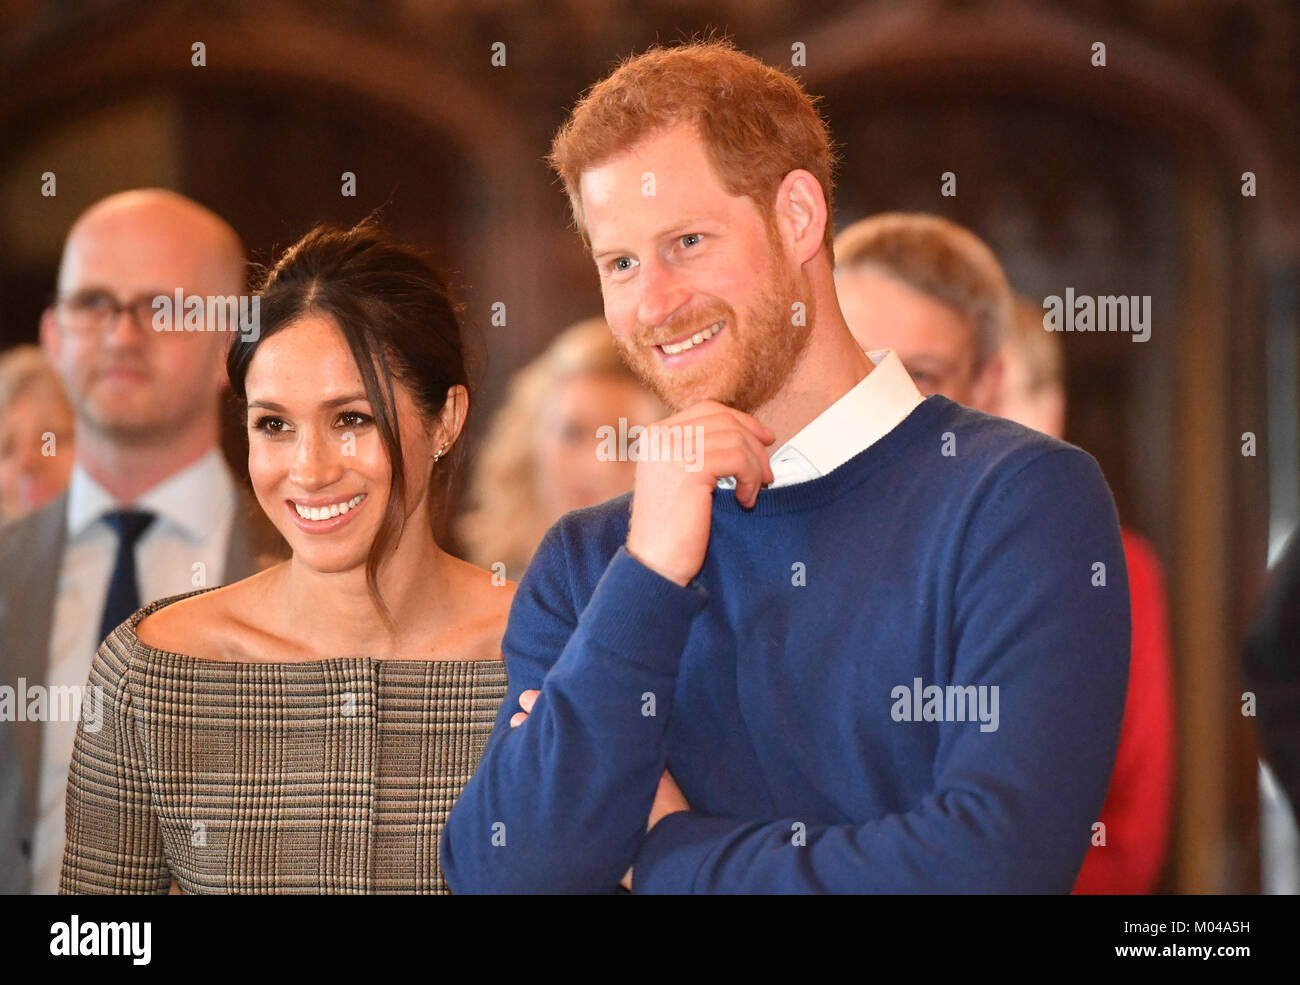 Prince Harry and Meghan Markle watch a performace during a visit to Cardiff Castle. Stock Photo